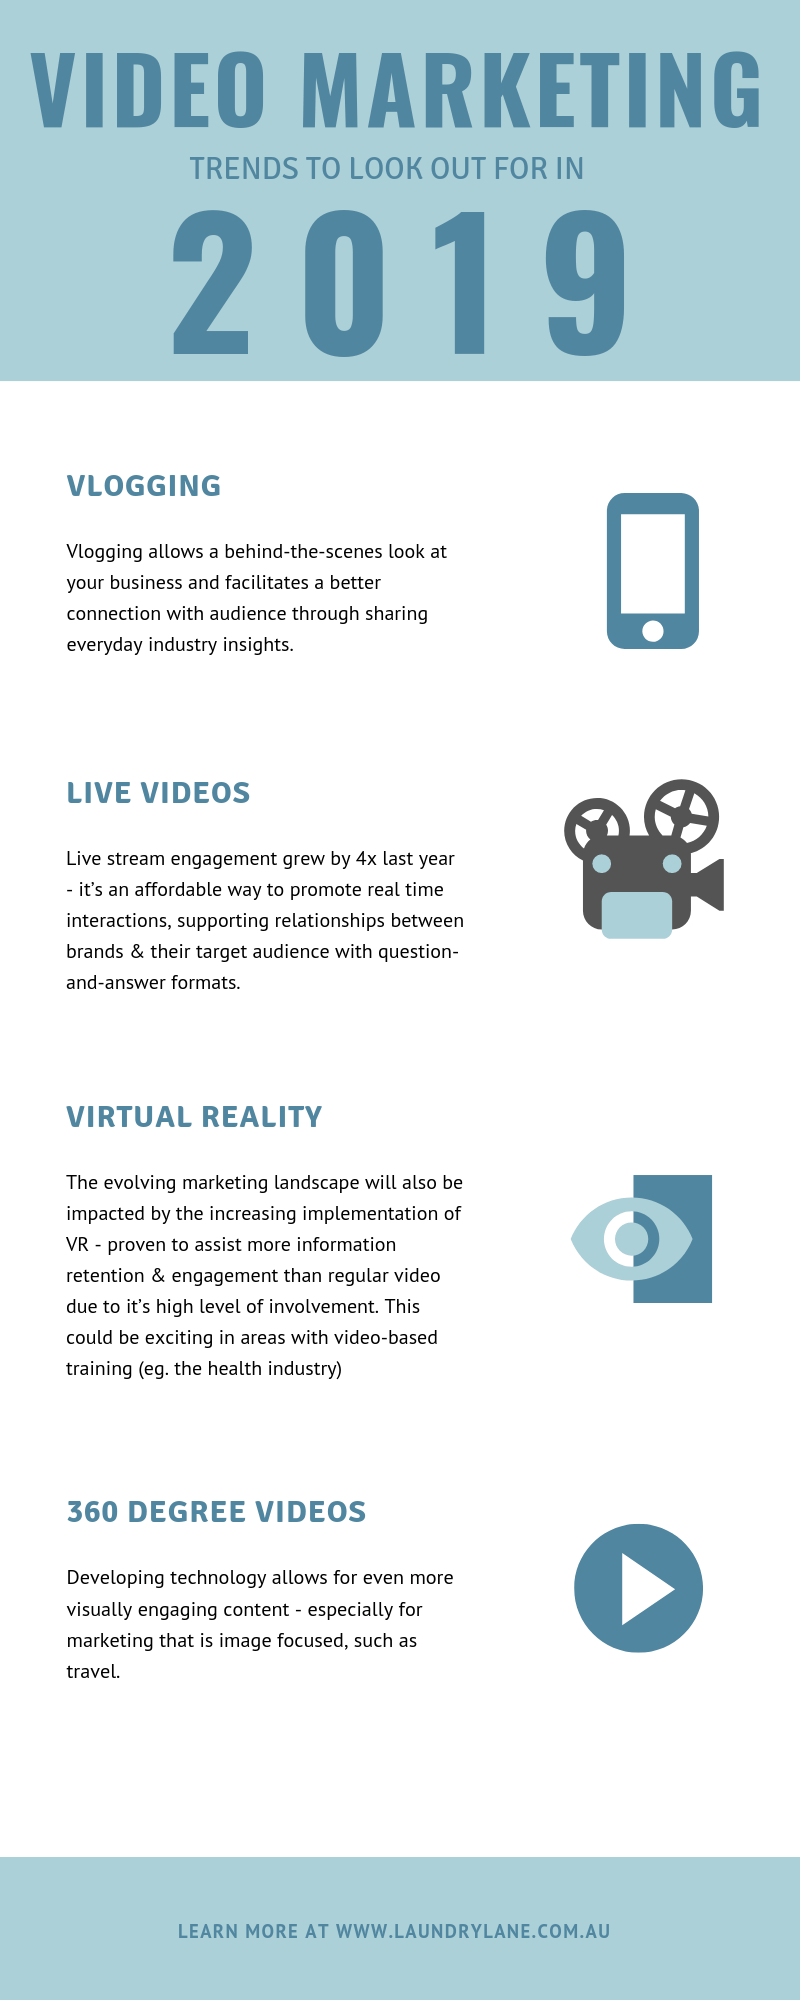 video marketing trends to look out for in 2019 Laundry lane productions video production company Sydney